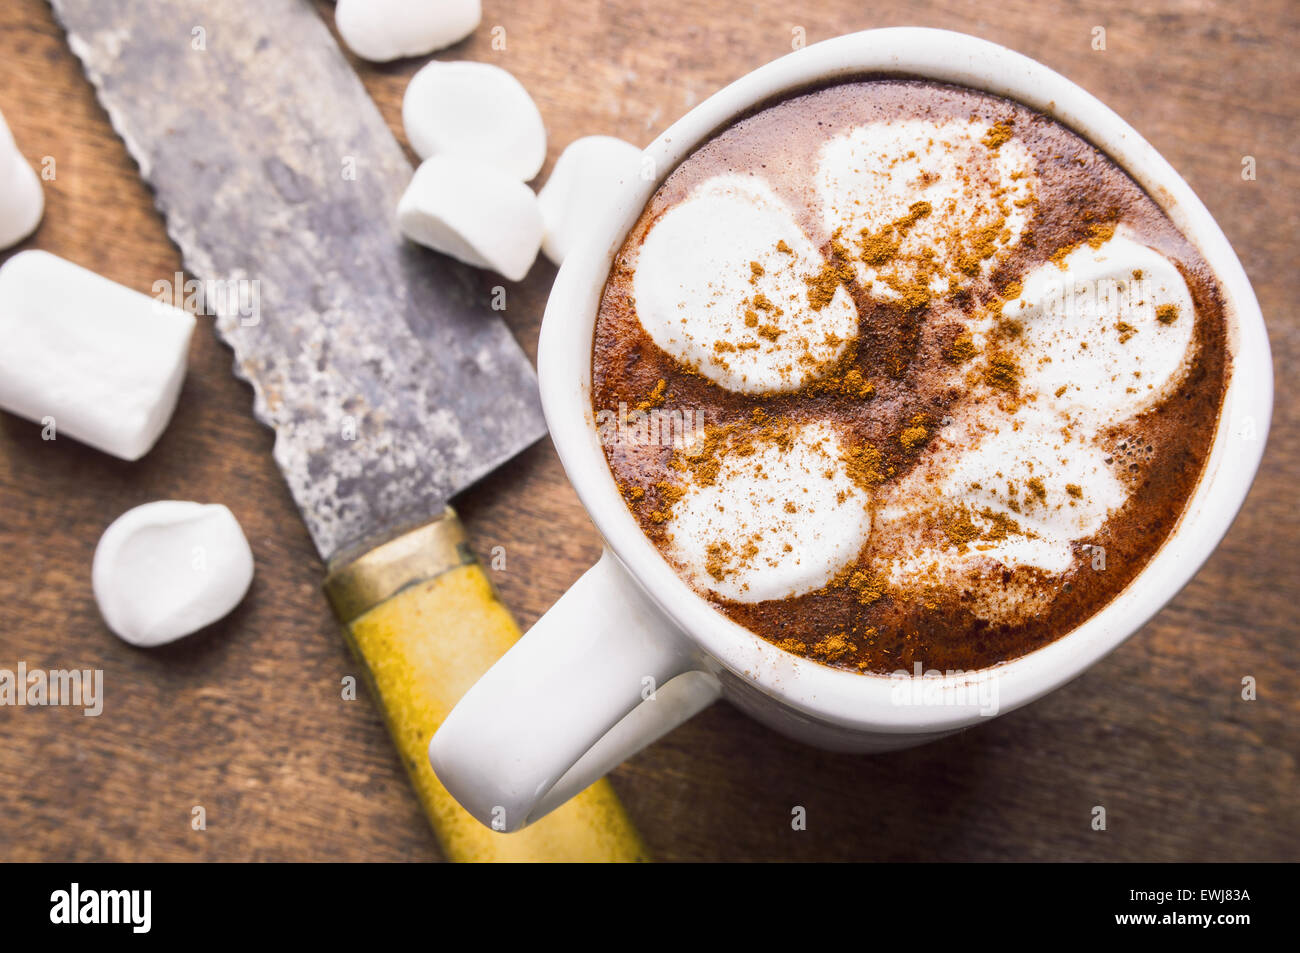 Hot chocolate with marshmallow - Stock Image